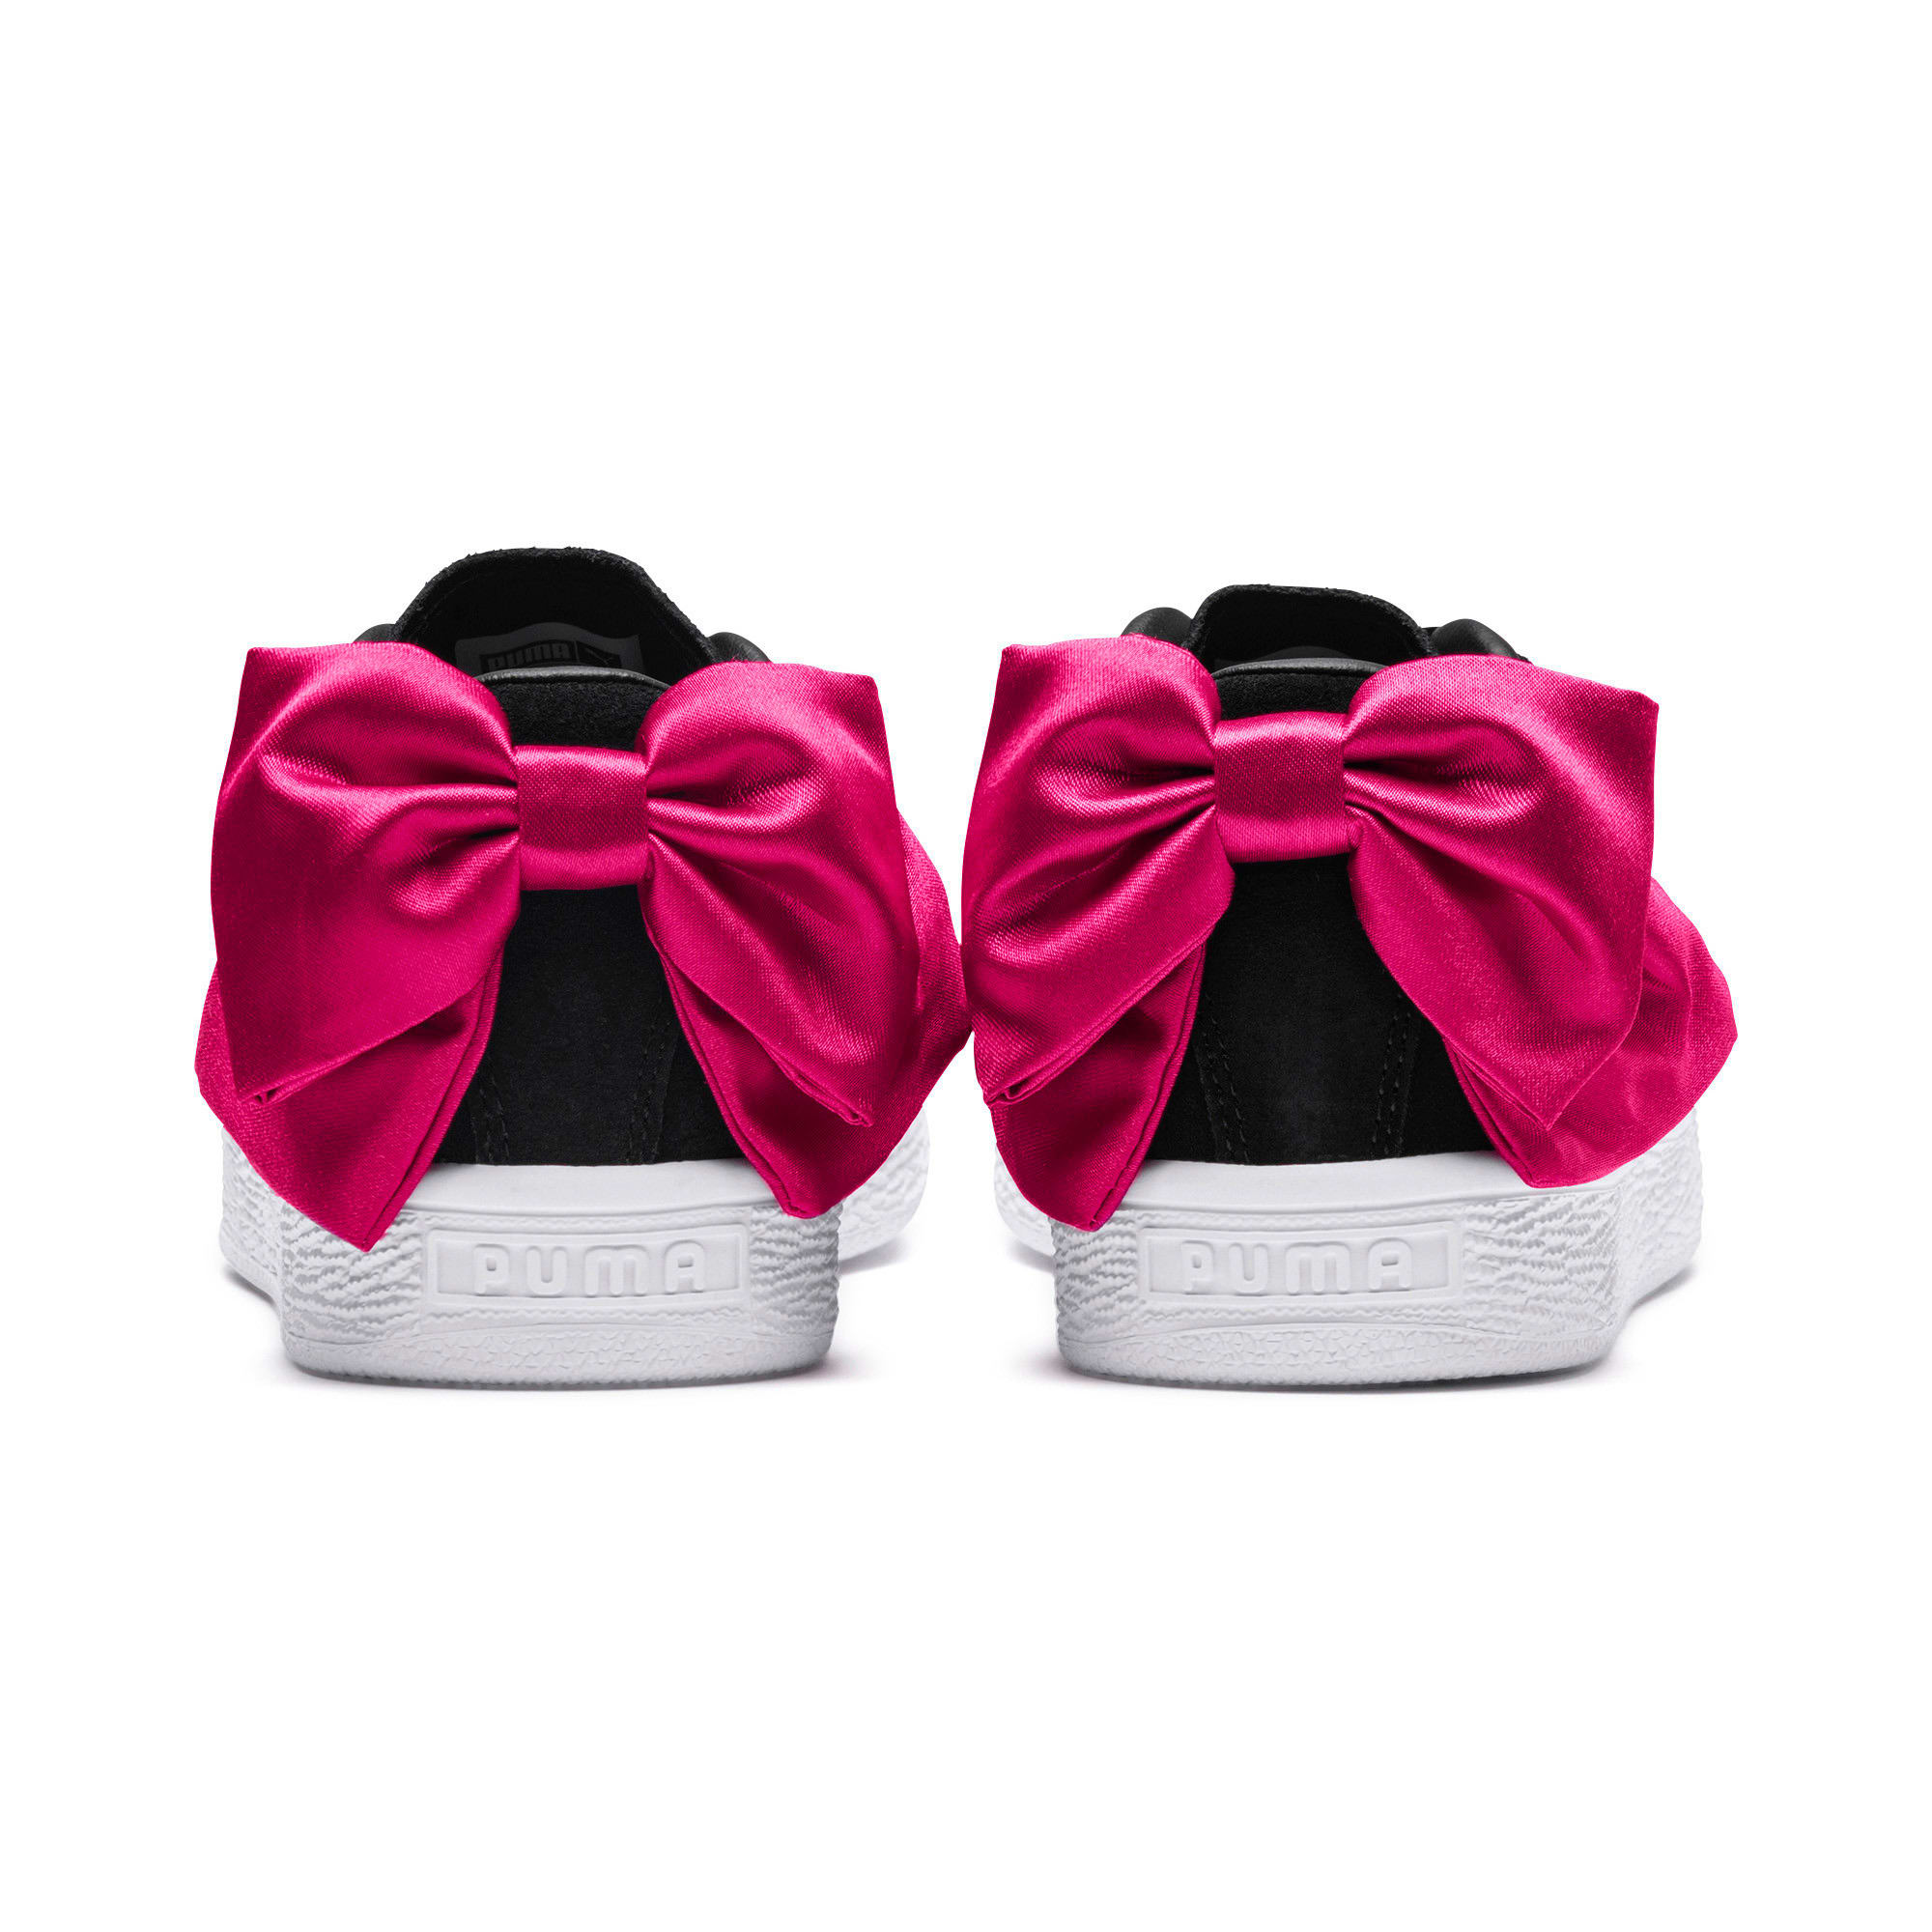 Thumbnail 2 of Suede Bow Girls' Trainers, Puma Black-Beetroot Purple, medium-IND